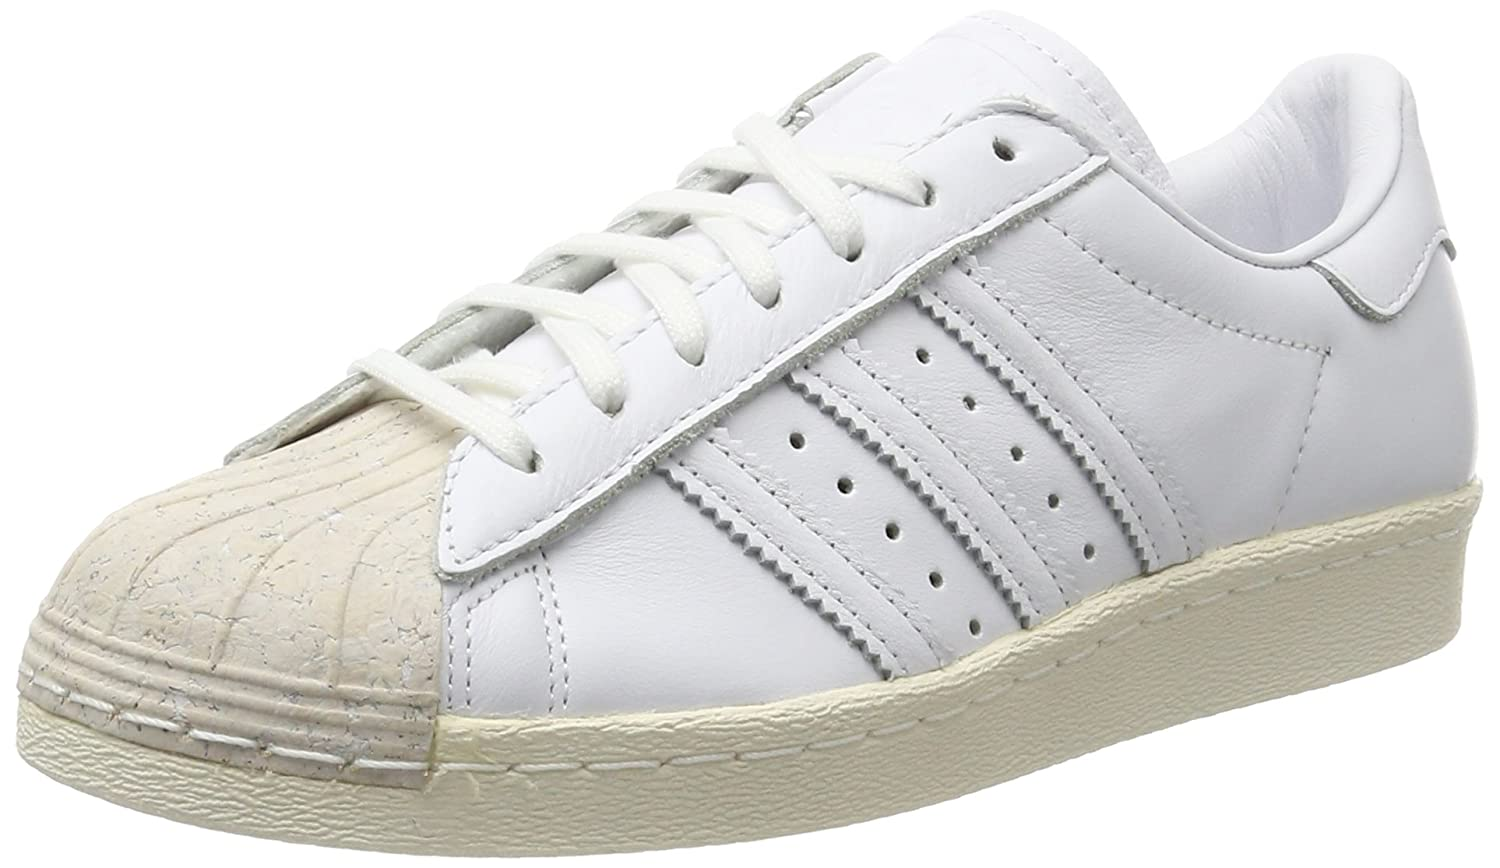 brand new 38cee 73b1e Amazon.com | adidas Originals Women's Superstar 80S Cork ...